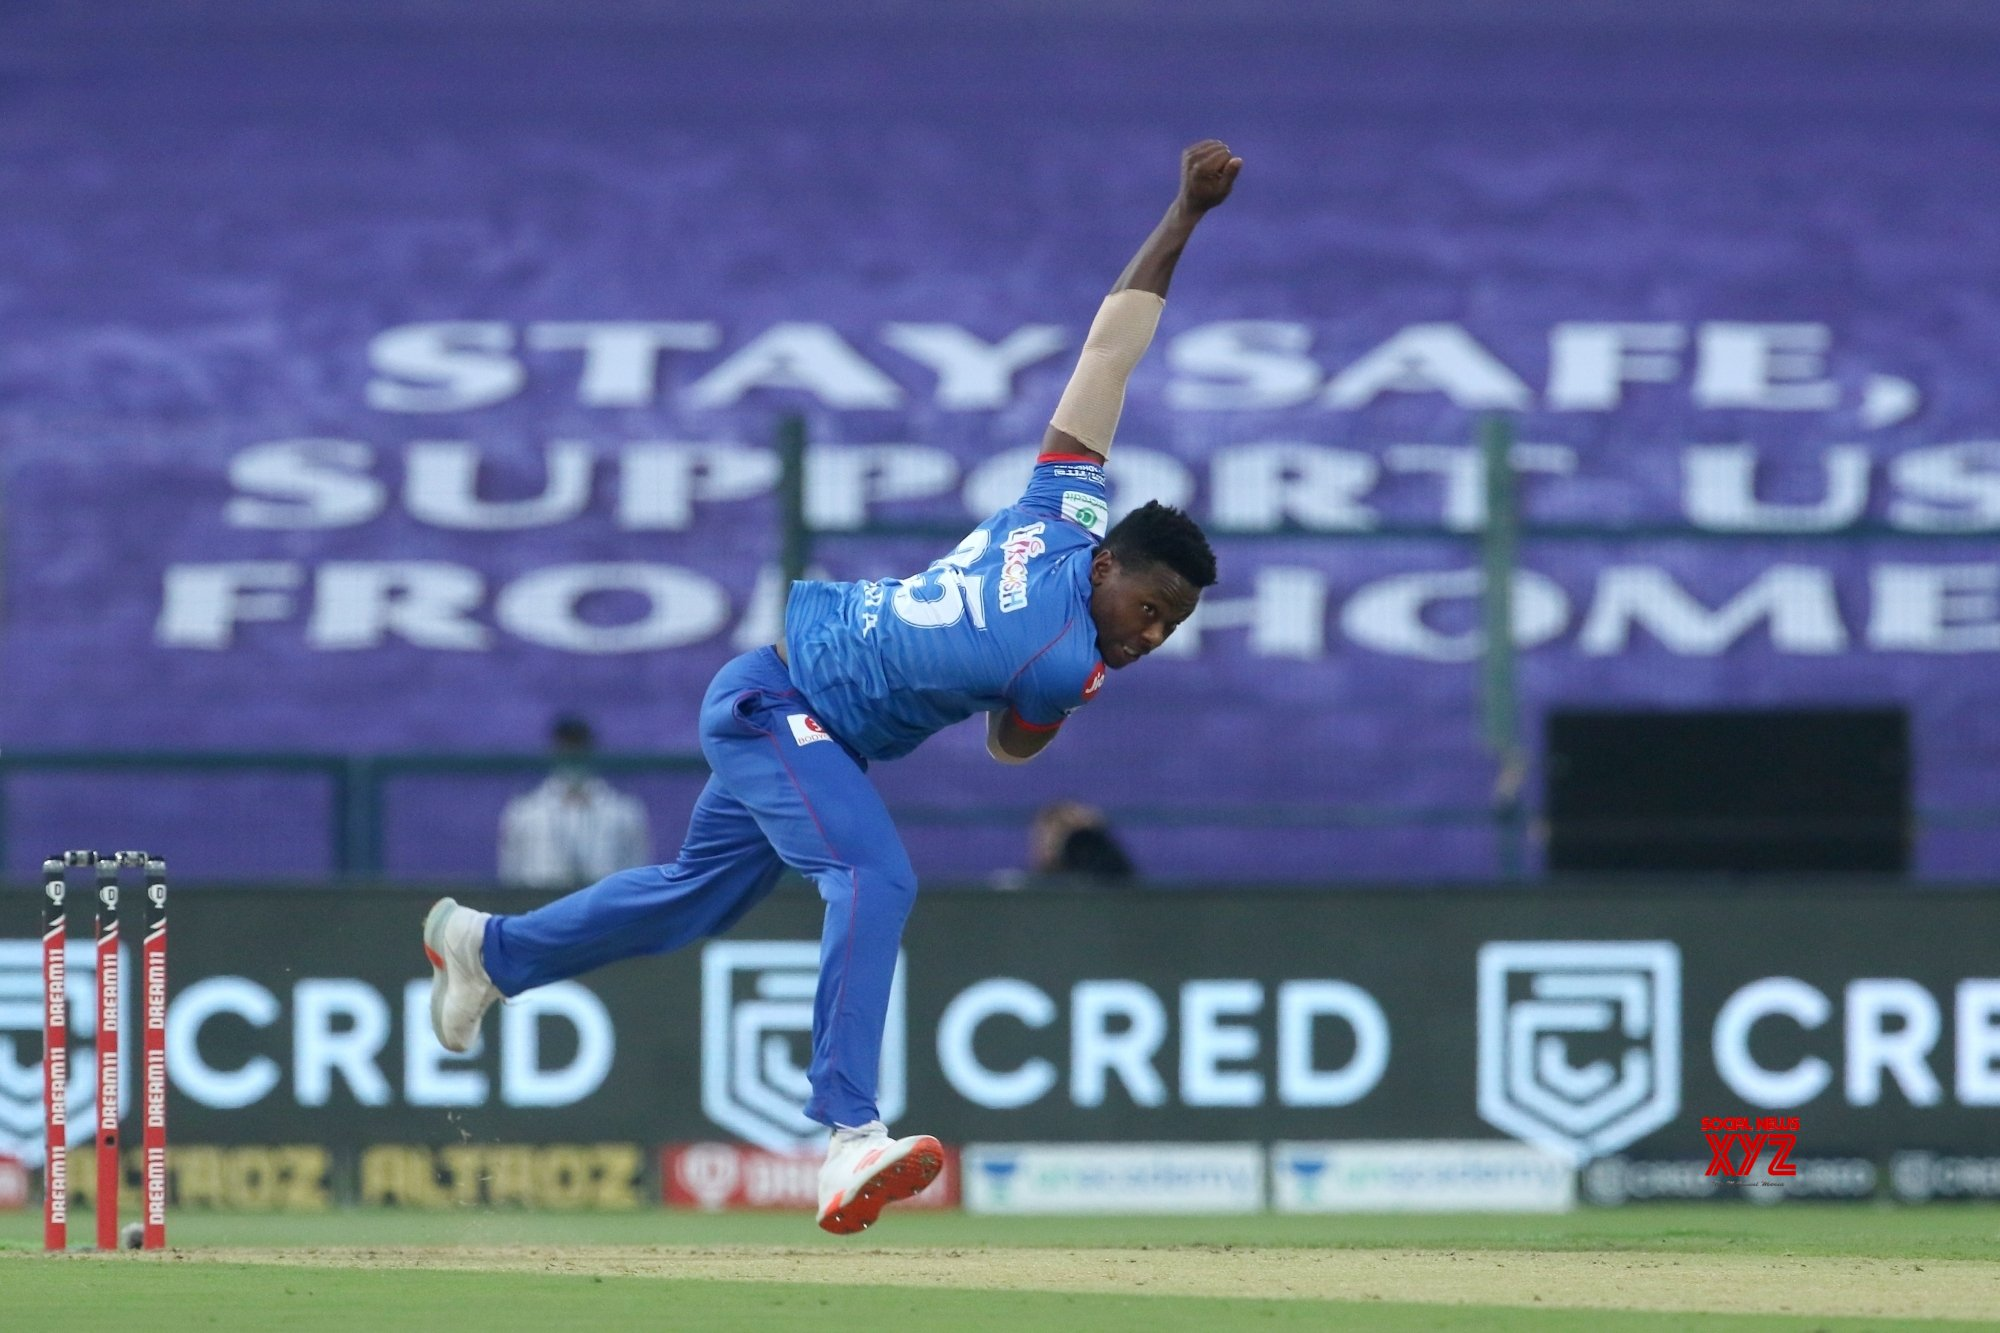 UAE pitches slow but helping seamers: DC speedster Rabada